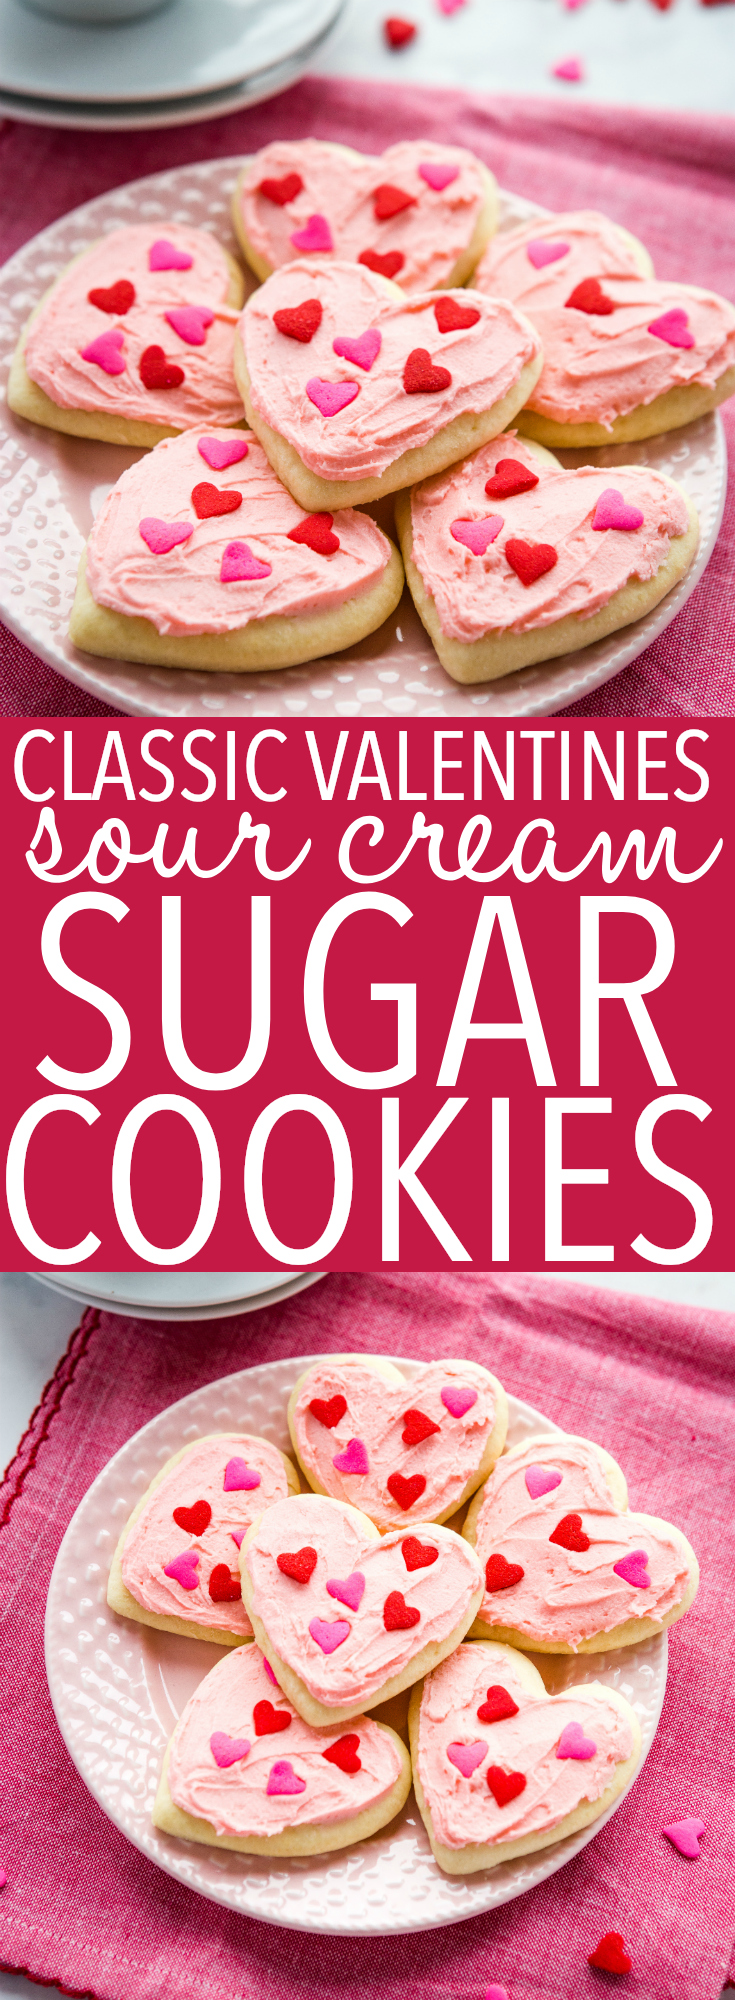 These Classic Sour Cream Sugar Cookies are the perfect old fashioned treat! With simple instructions for the perfect soft & chewy sugar cookies every time! Recipe from thebusybaker.ca! #valentinesday #sugarcookies #cookies #homemade #sourcream #easyrecipe #dessert #hearts #heartcookies #cookiecutters via @busybakerblog